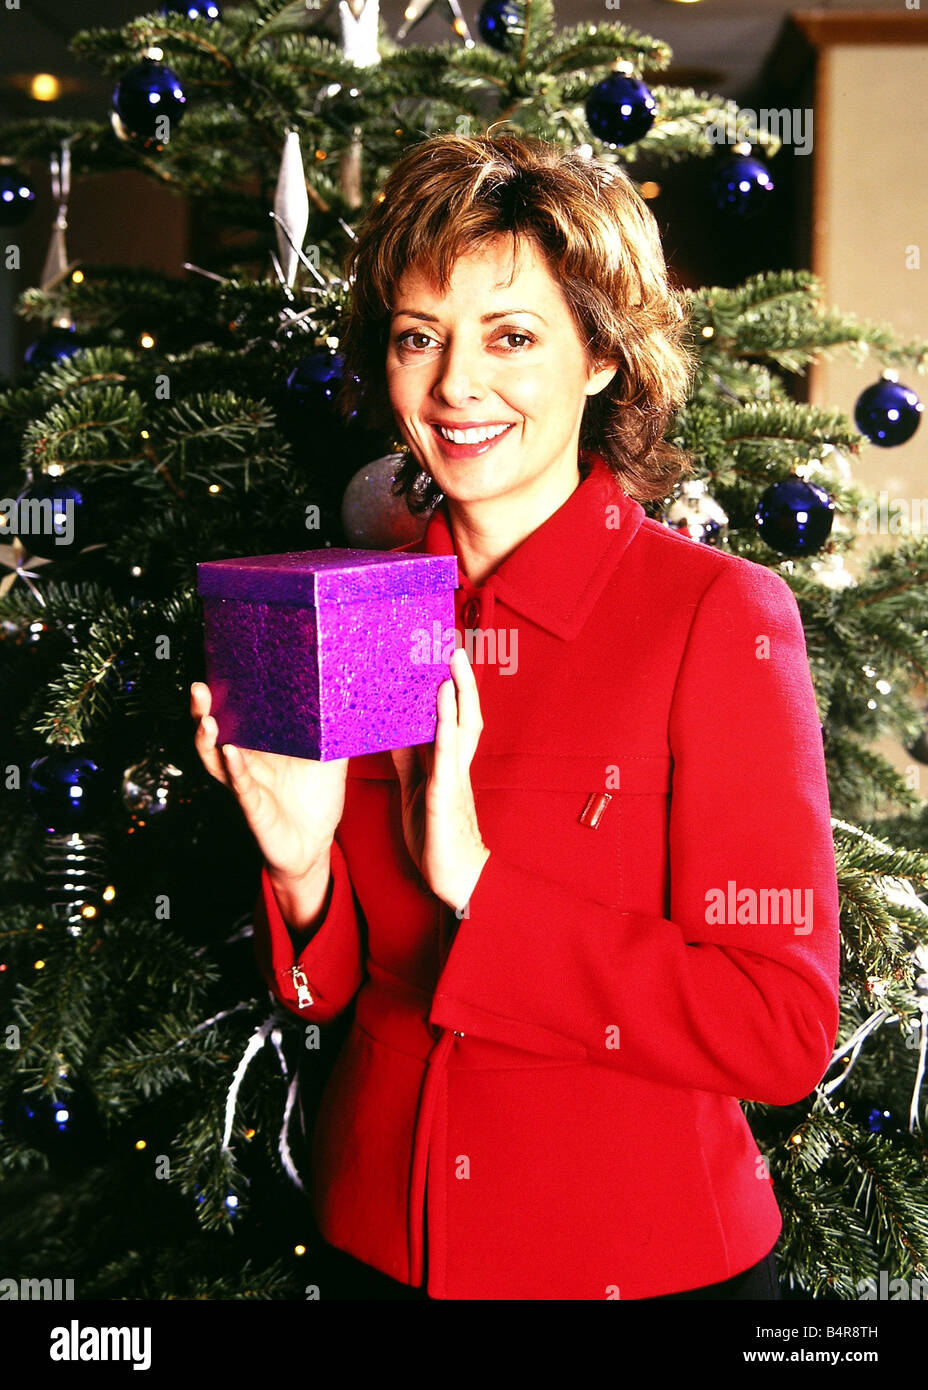 [Image: television-presenter-carol-vorderman-chr...B4R8TH.jpg]